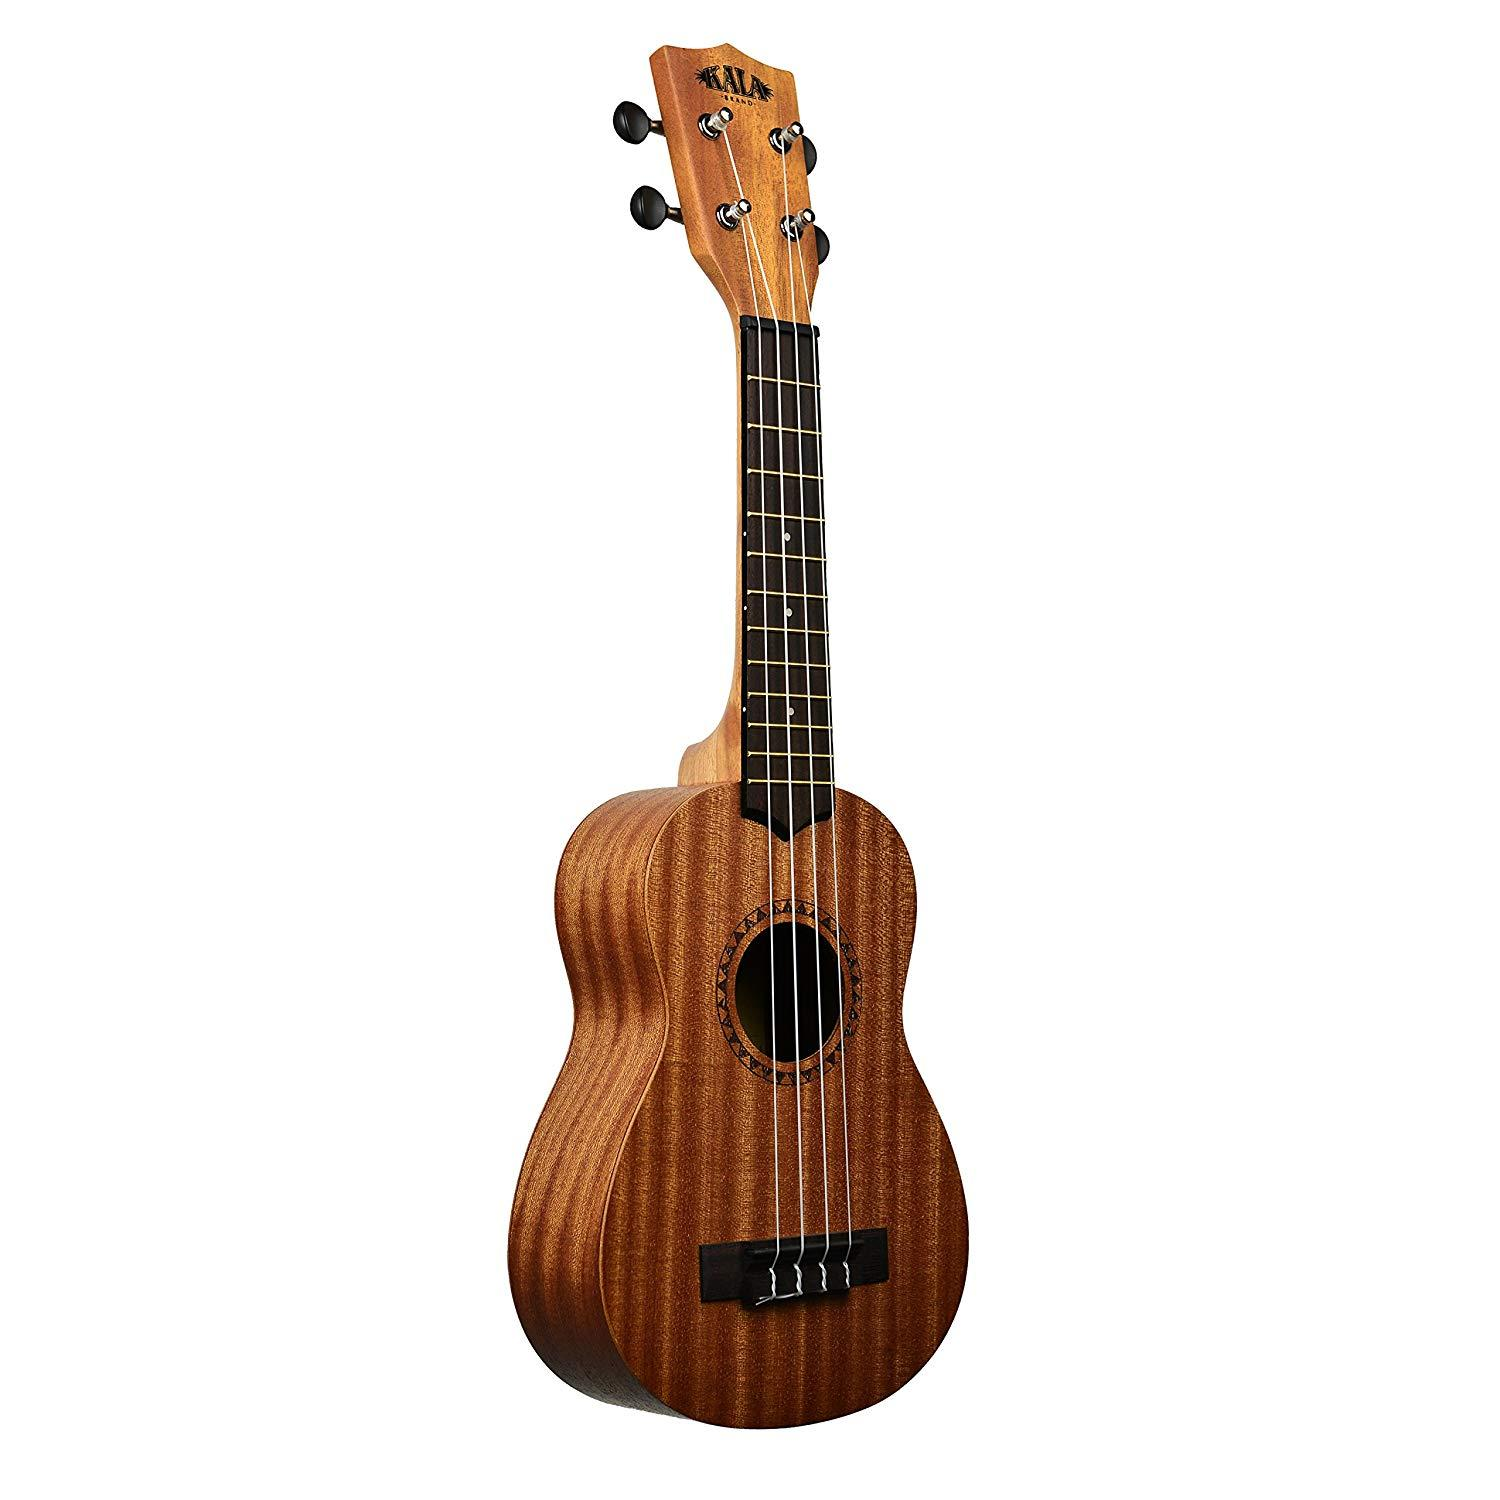 Gift Ideas in Musical Instruments